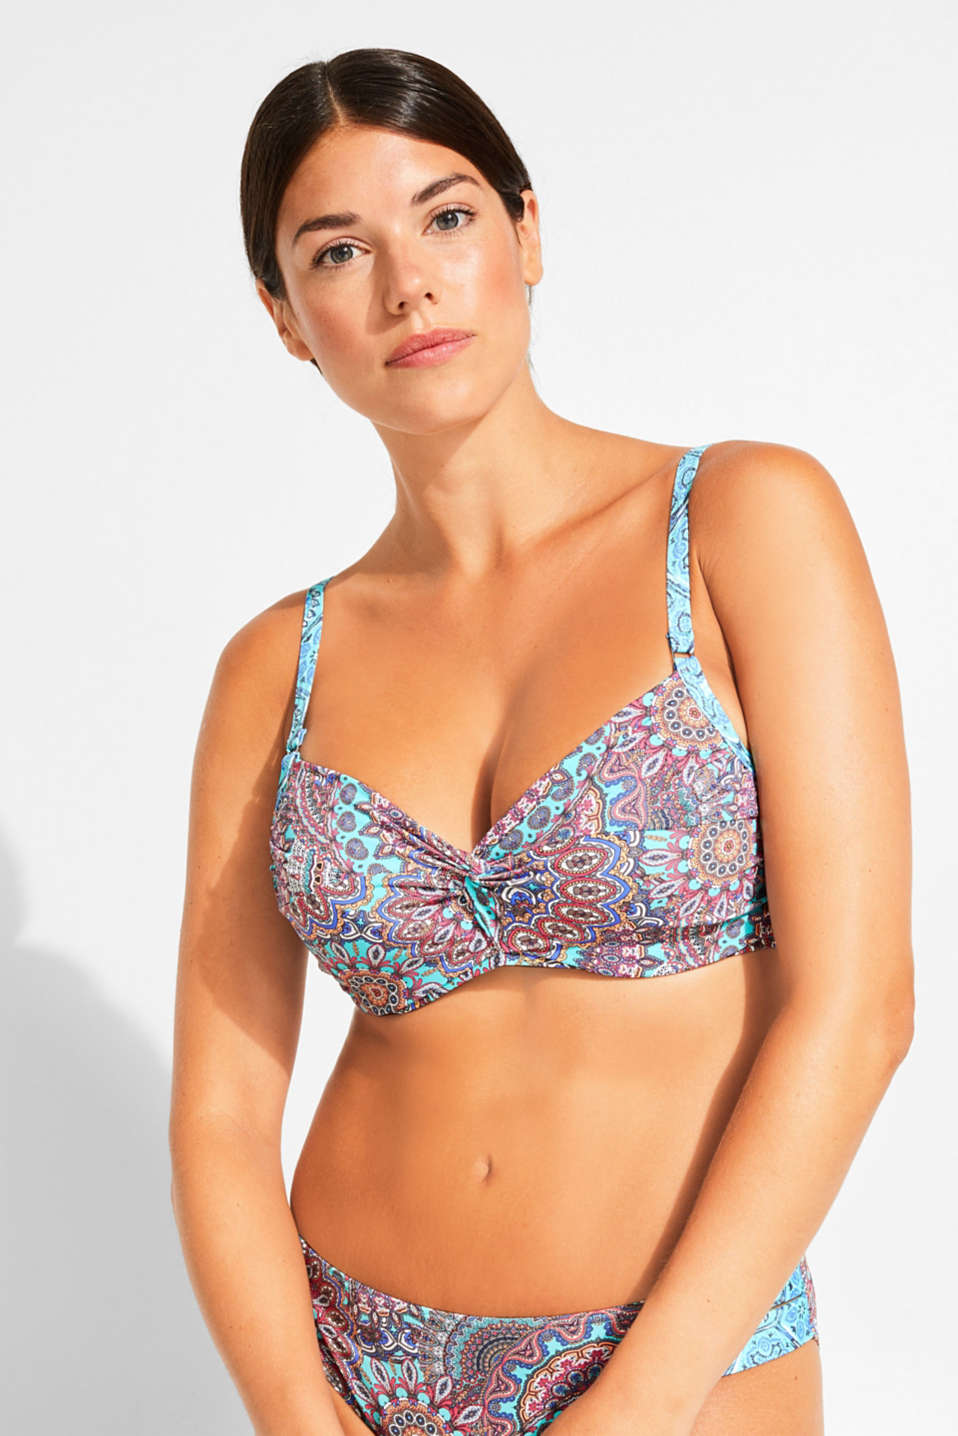 Esprit - Unpadded underwire top for large cup sizes